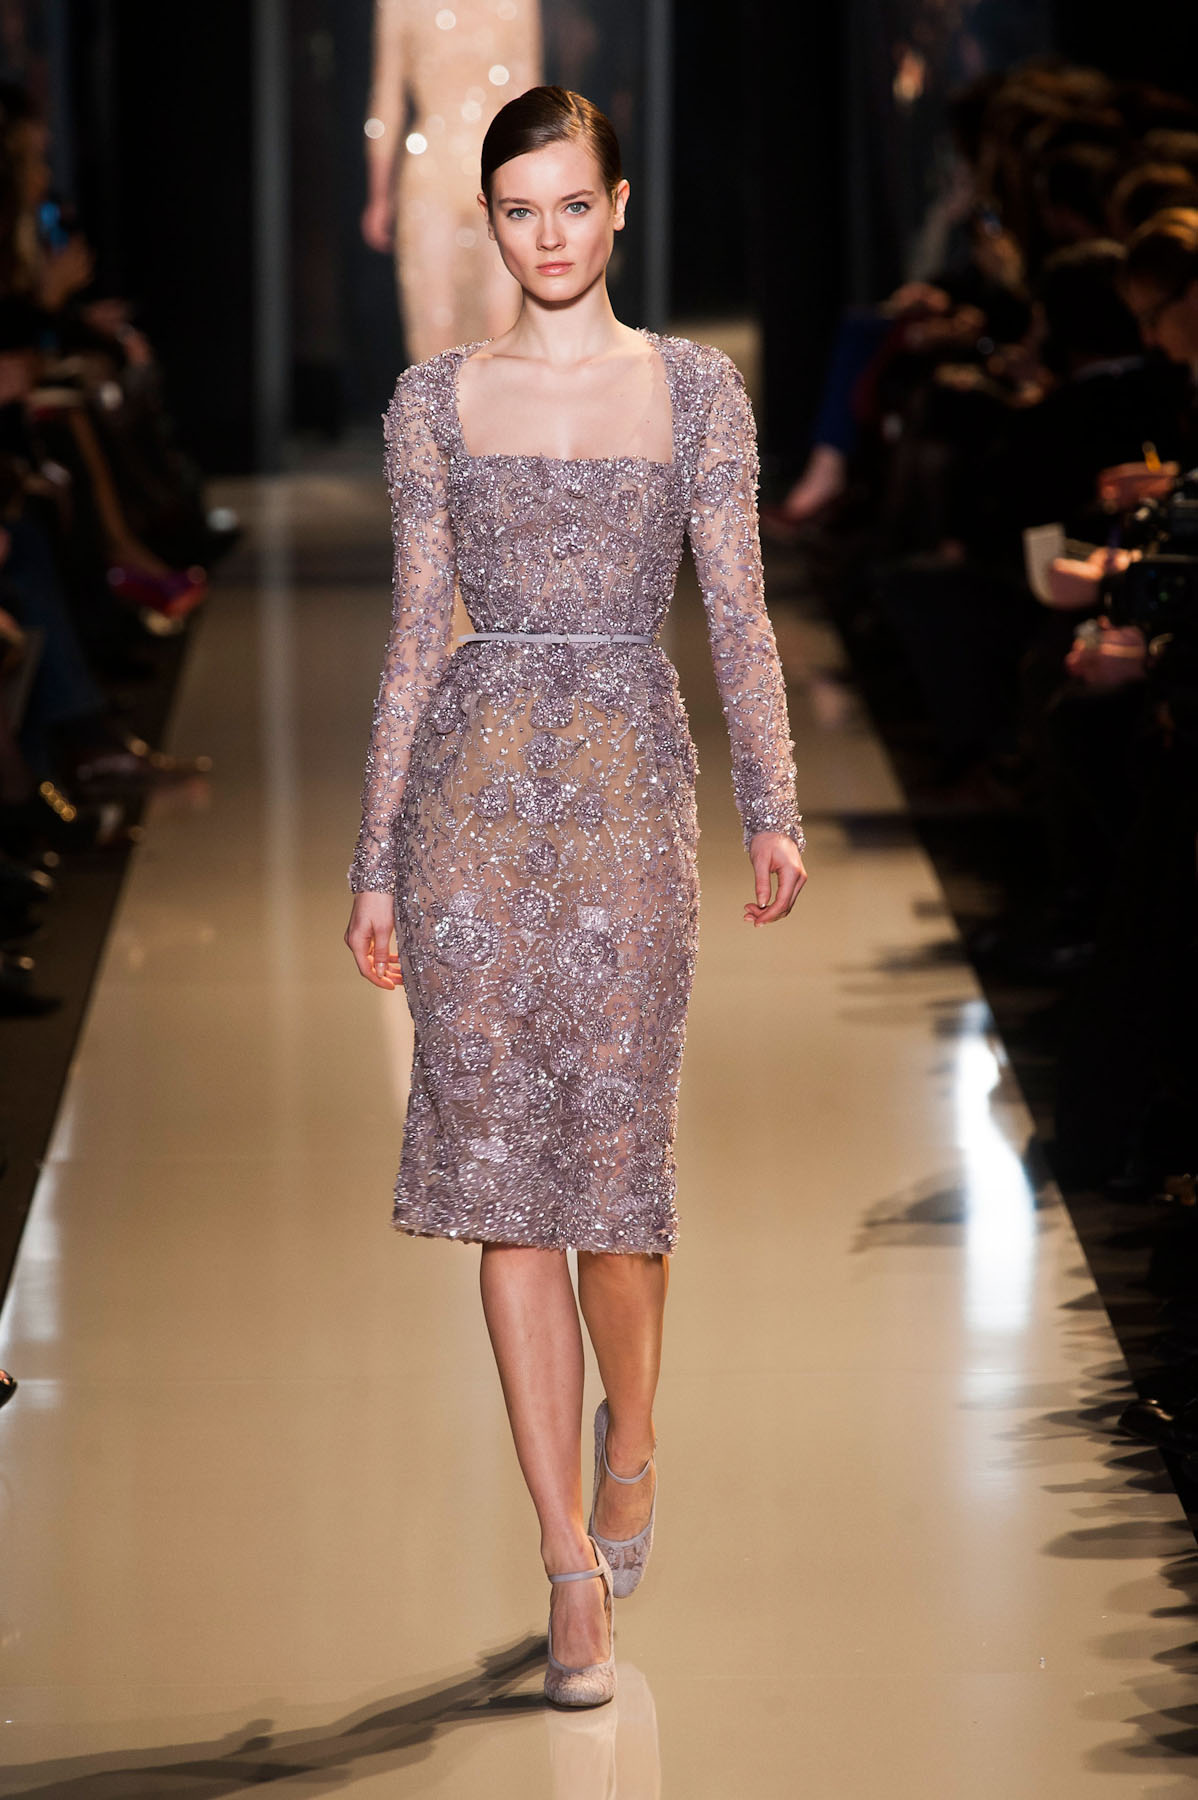 ELIE SAAB READY-TO-WEAR SPRING SUMMER 2013 FASHION SHOW ...